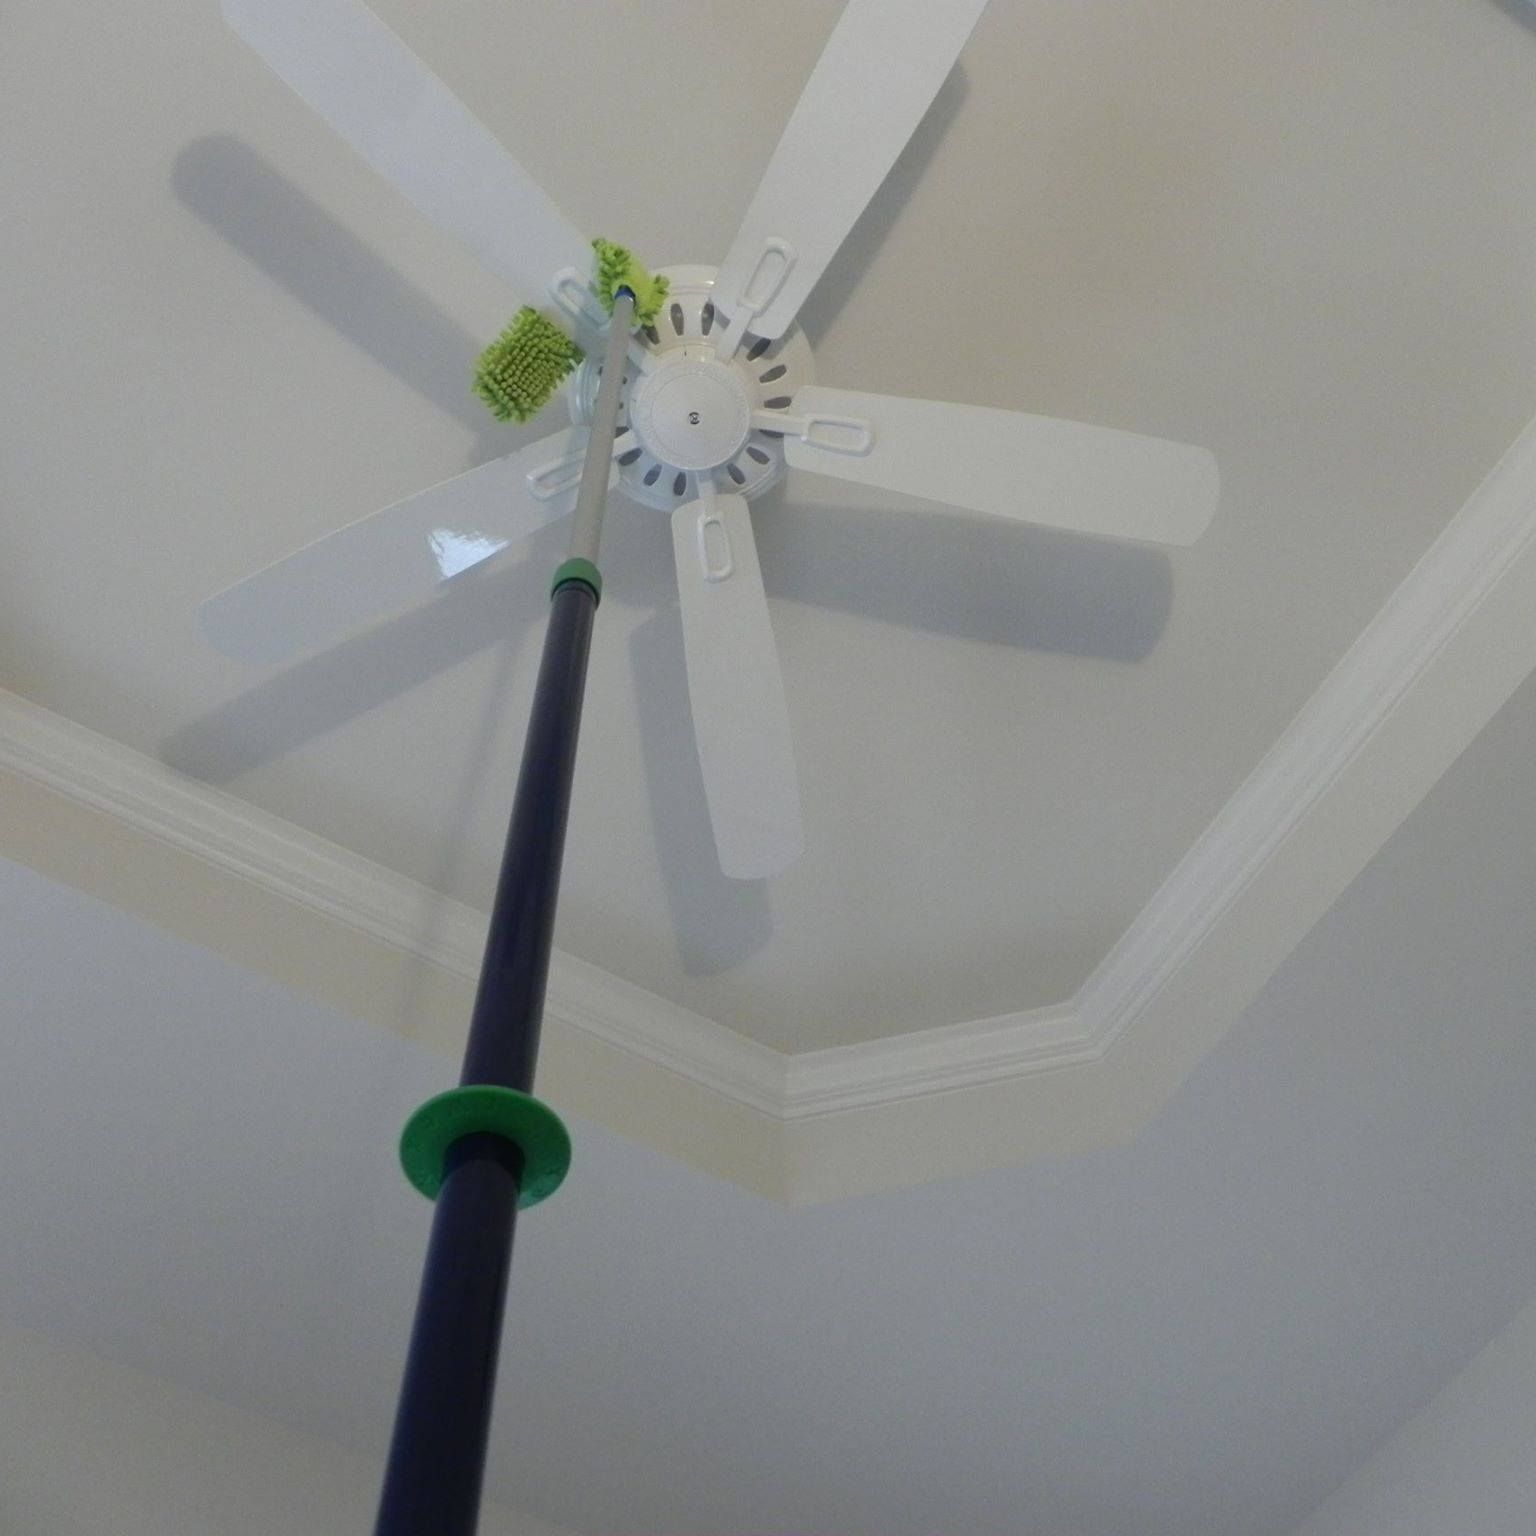 12 foot ceilings cleaned with the Norwex EnviroWand on the ...